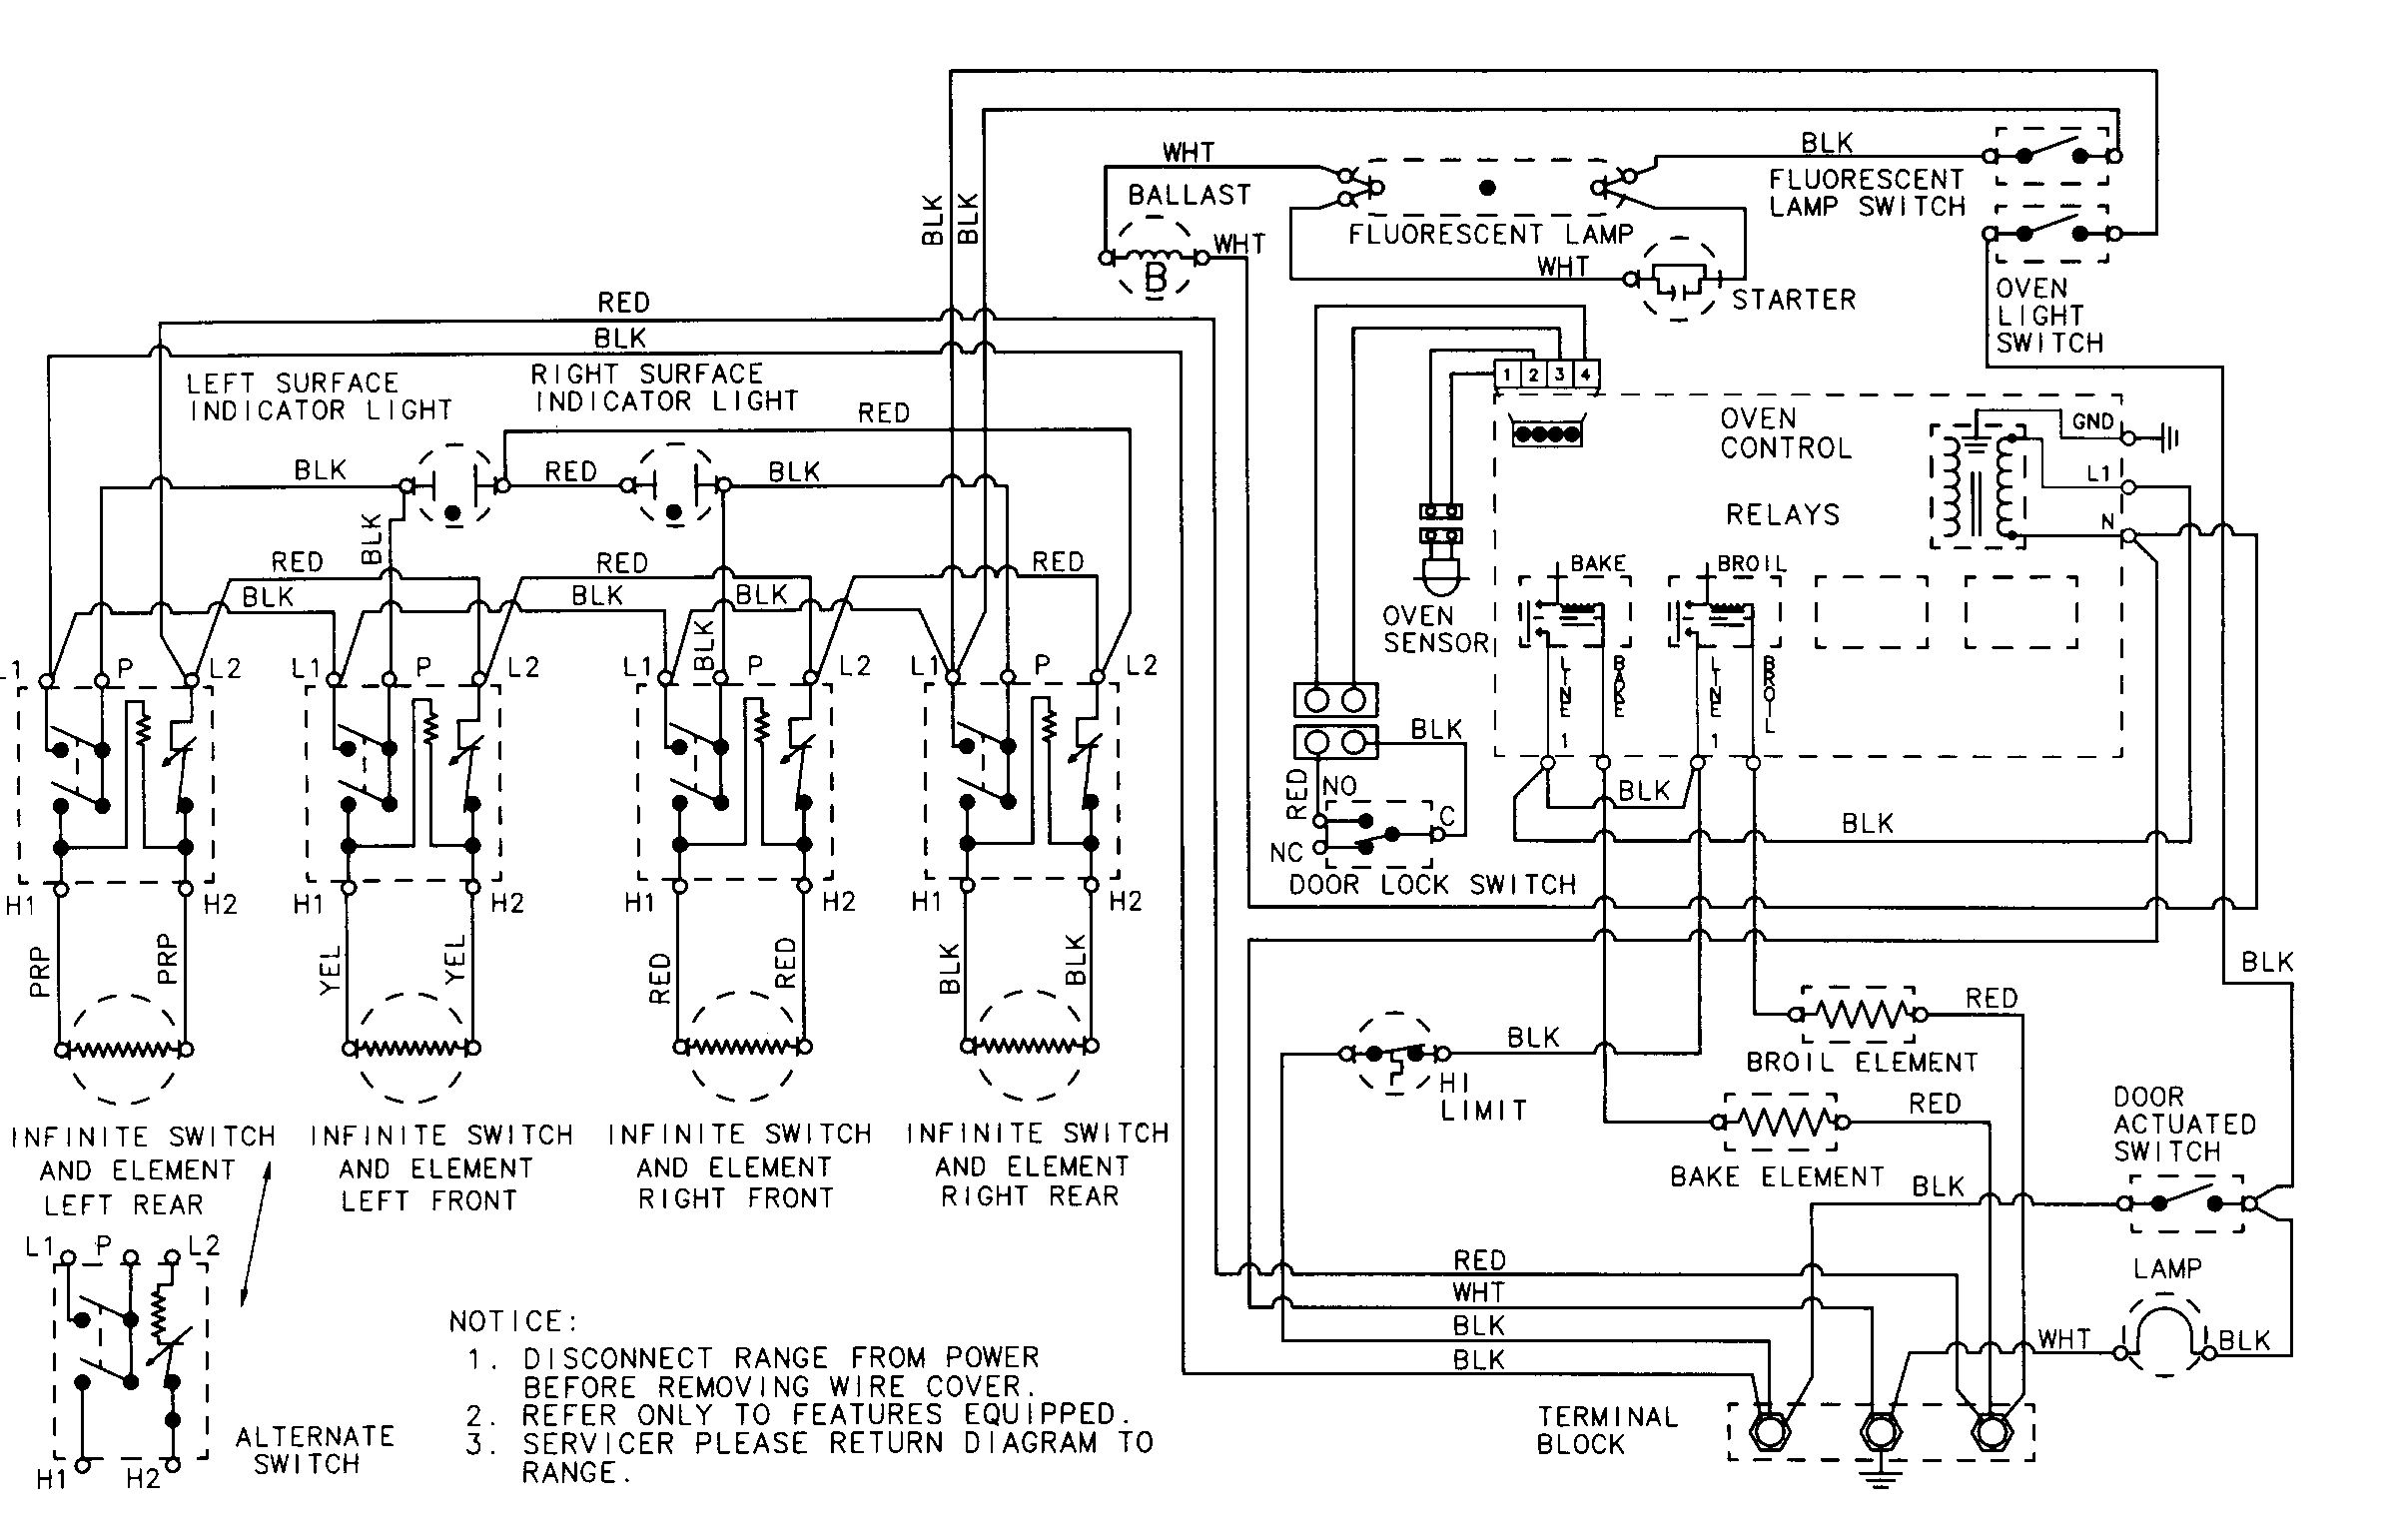 wiring diagram for ge ptac az61 maytag cre9400acl timer - stove clocks and appliance timers wiring diagram for ge electric burners